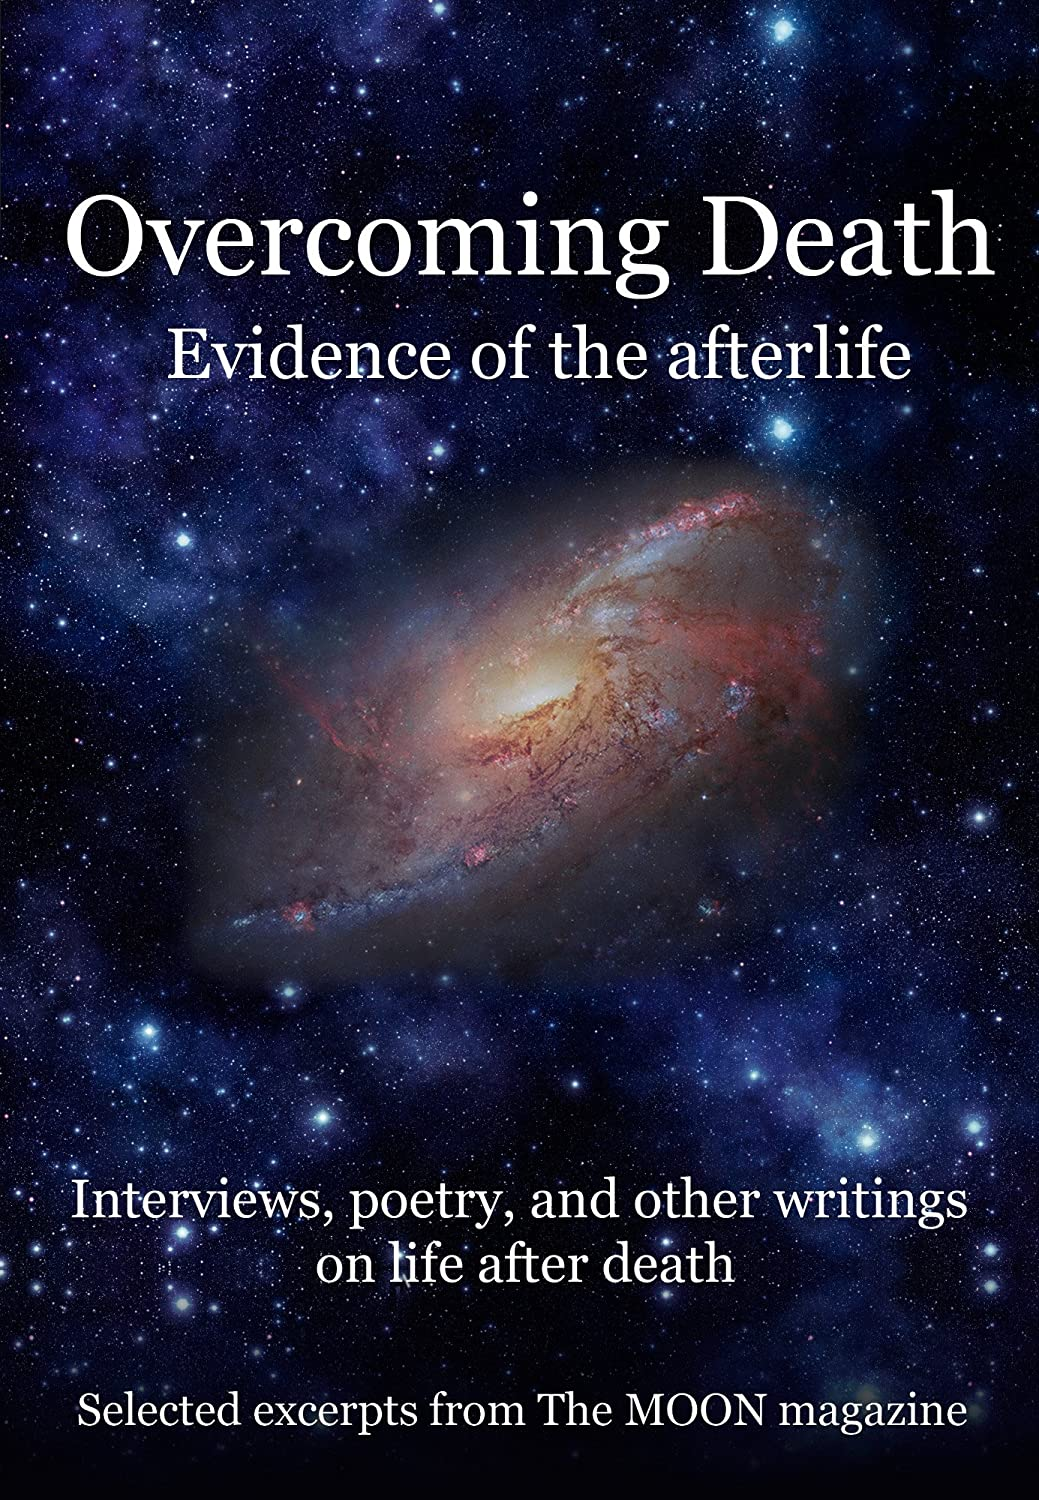 Overcoming Death